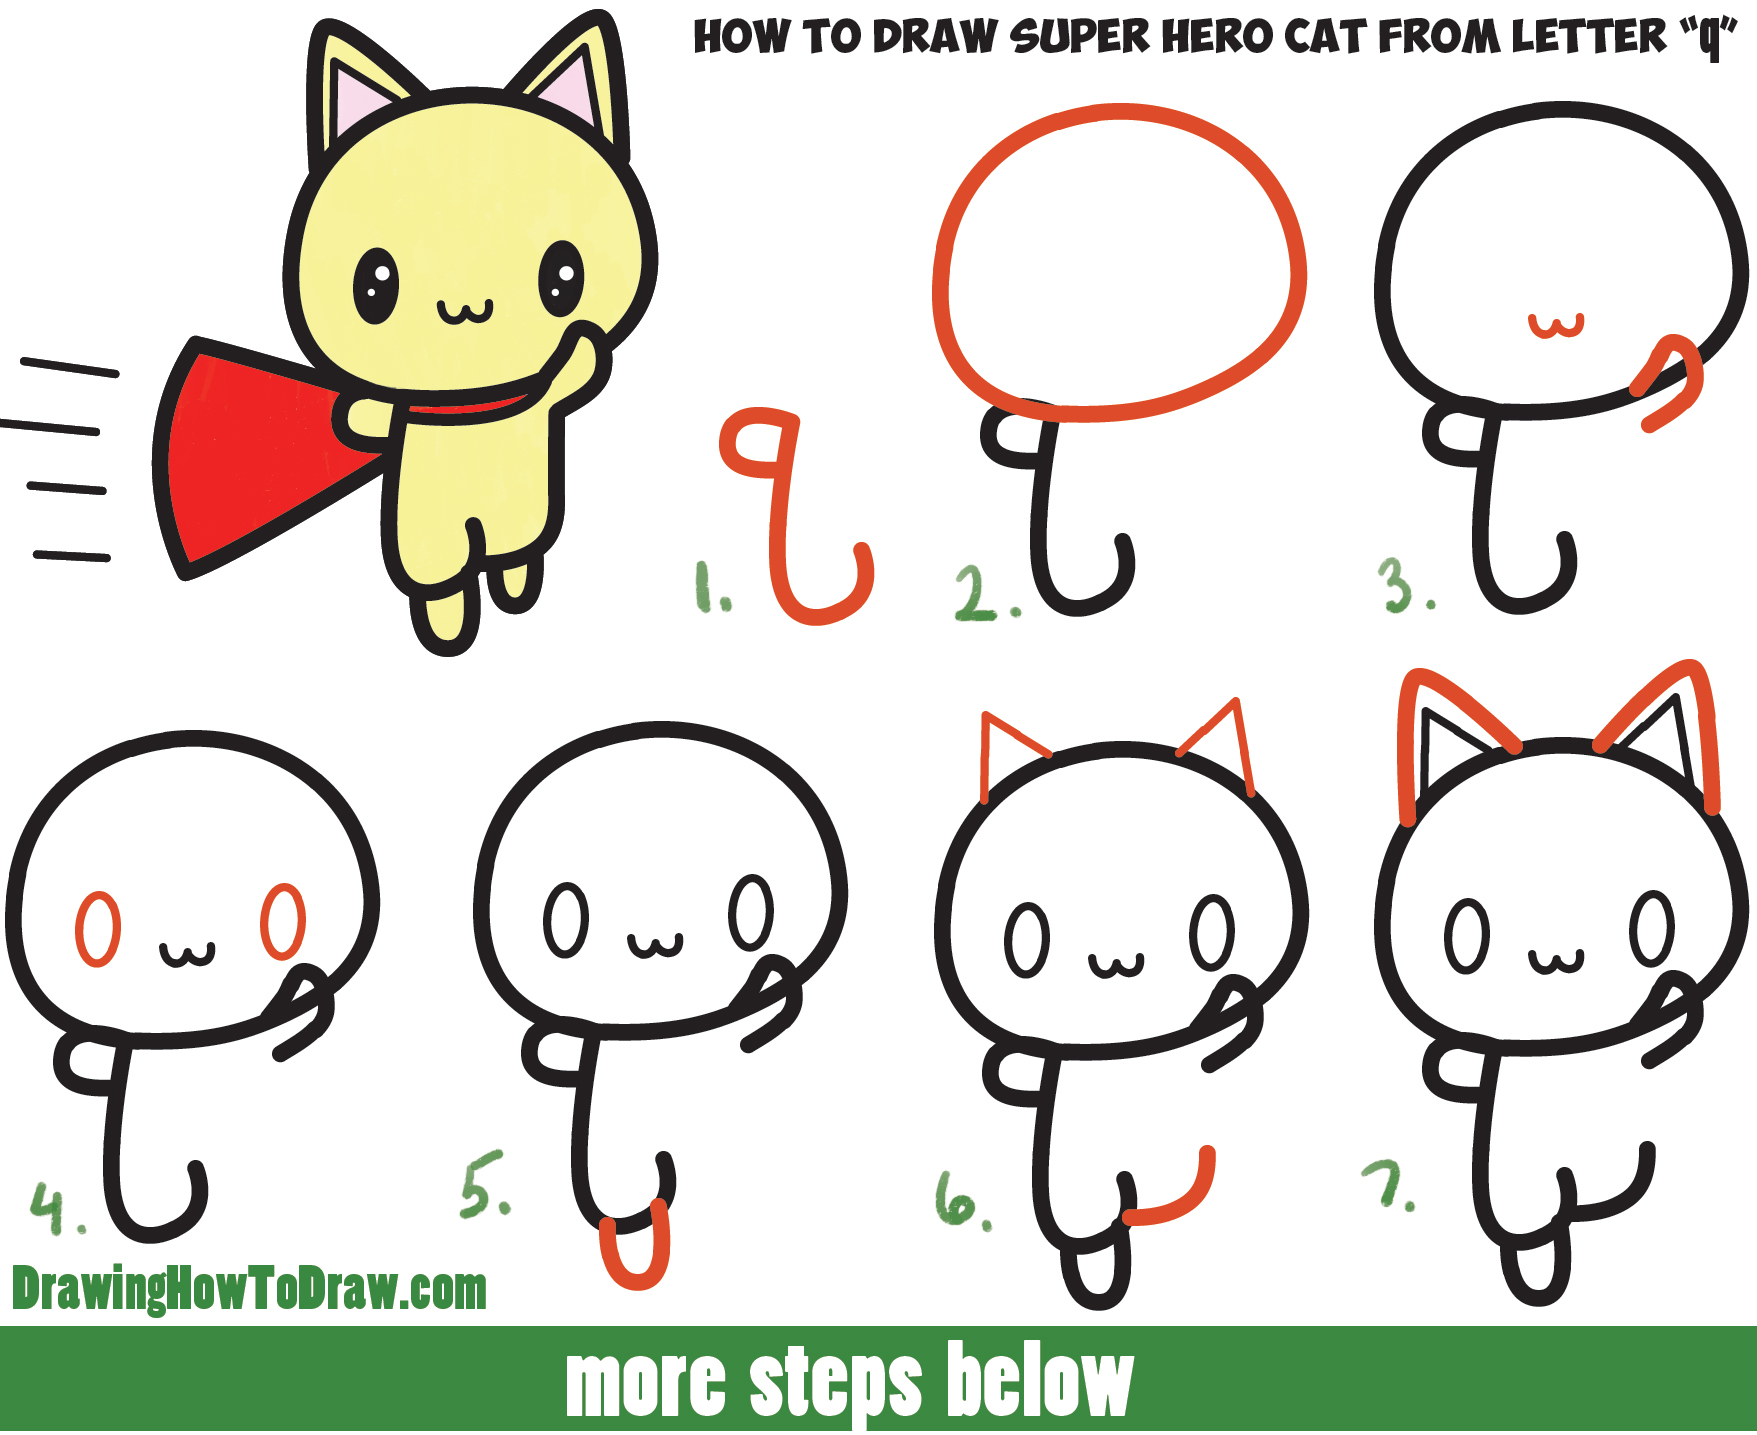 Uncategorized Steps To Draw A Cat how to draw a cute cat super hero kawaii with easy step by step